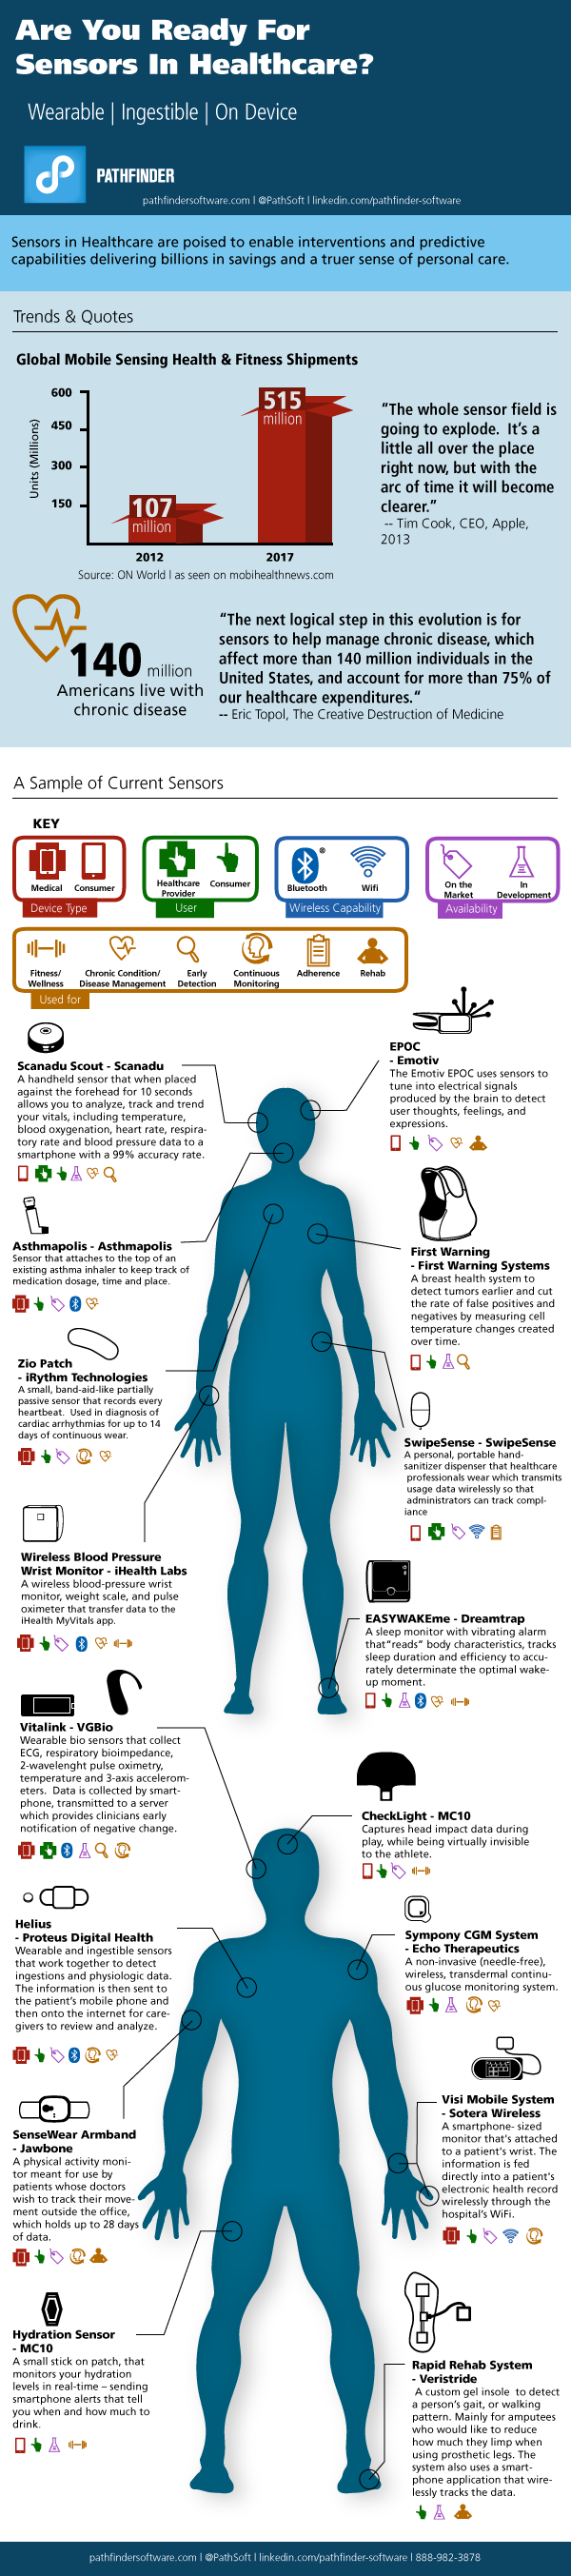 Infographic: The Impact of Sensors in Healthcare on Patient Care